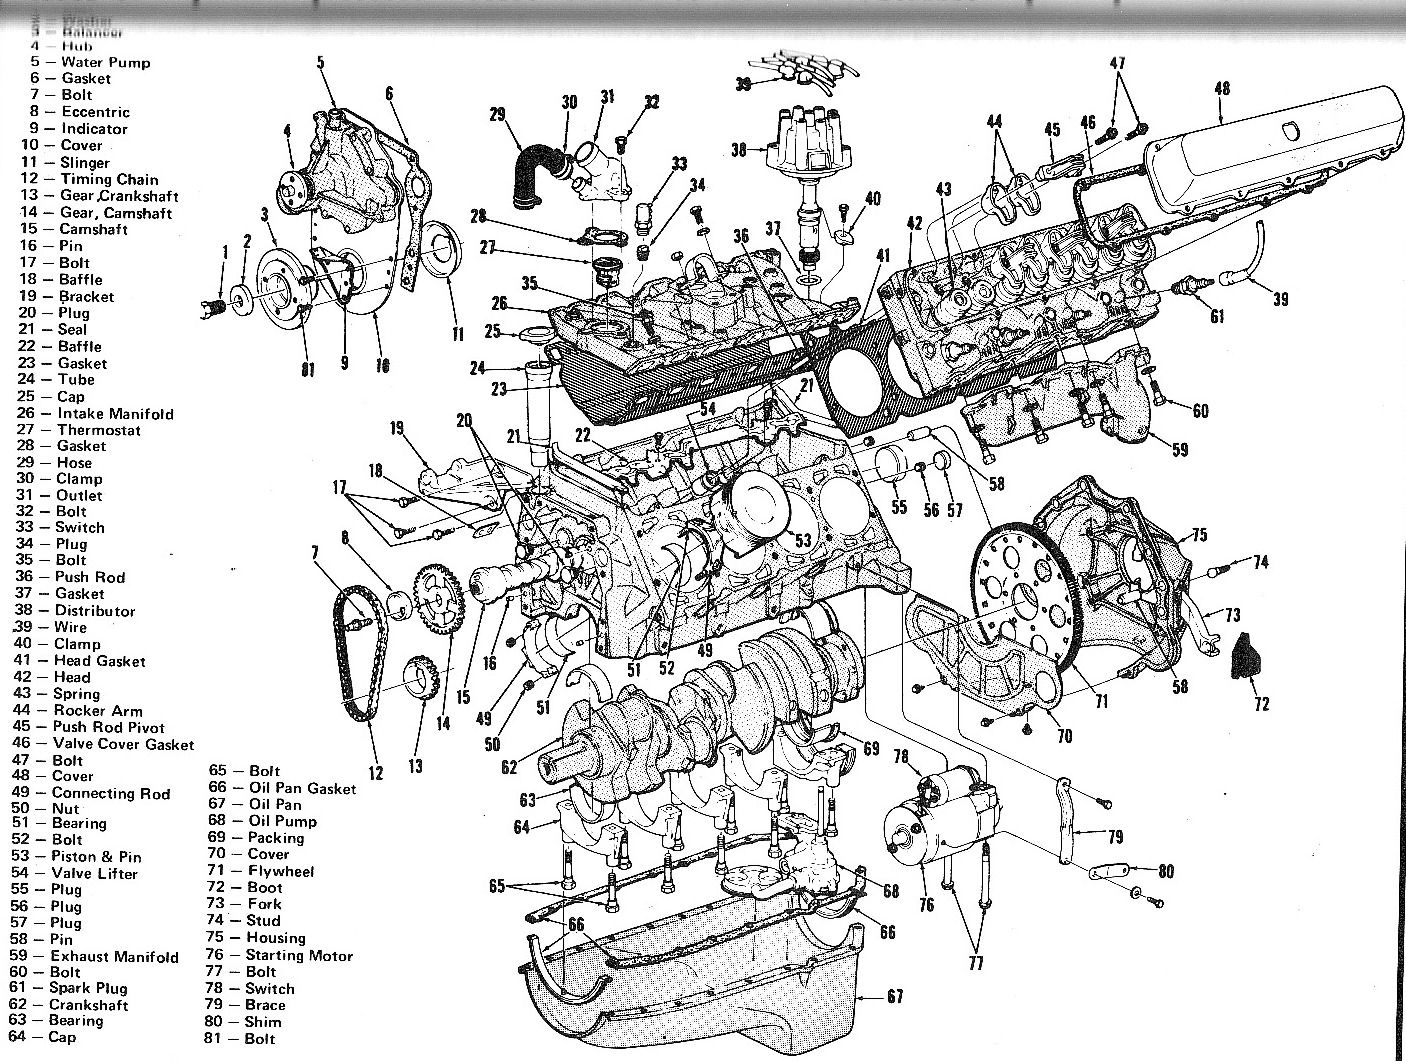 1968 mustang engine diagram | drab-result wiring diagram -  drab-result.ilcasaledelbarone.it  ilcasaledelbarone.it